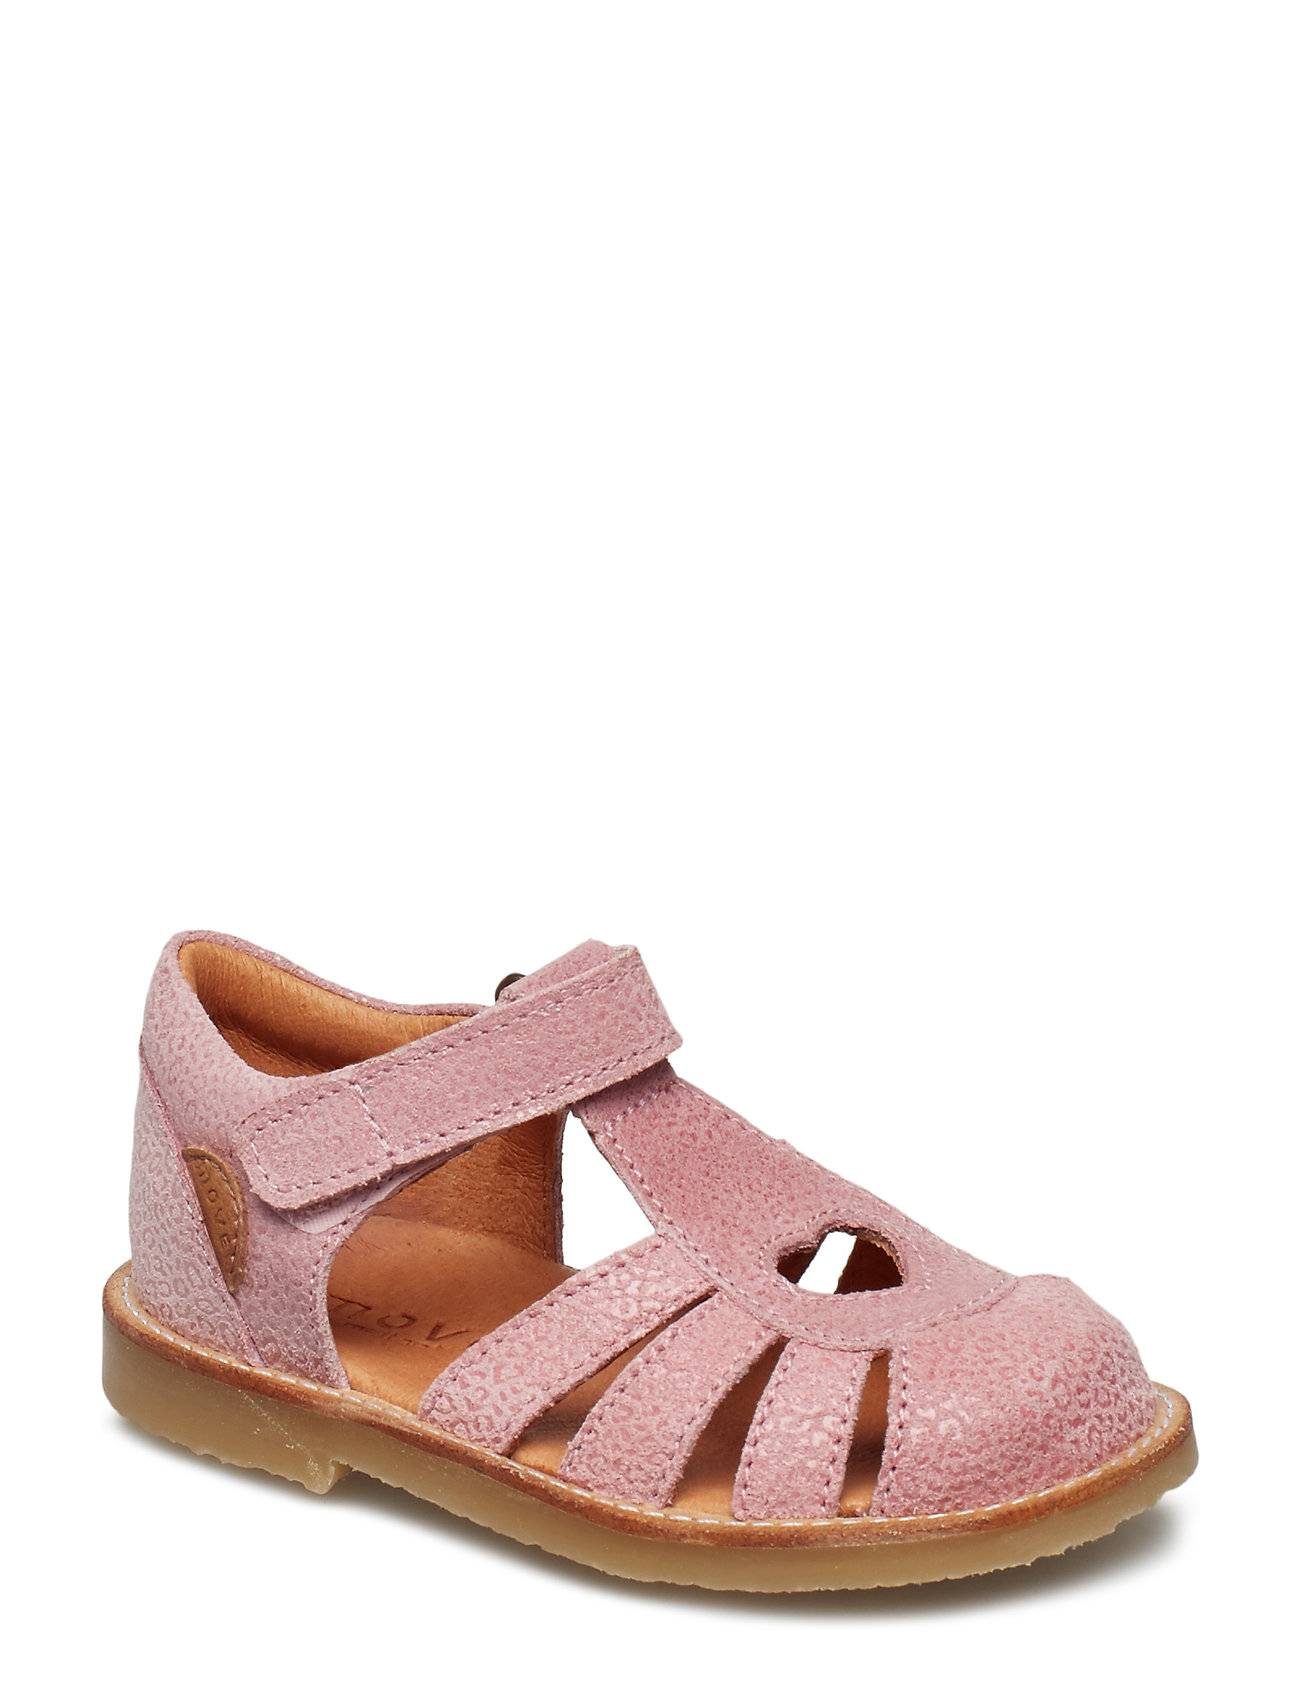 Move by Melton Infant - Girls Sandal With Heart